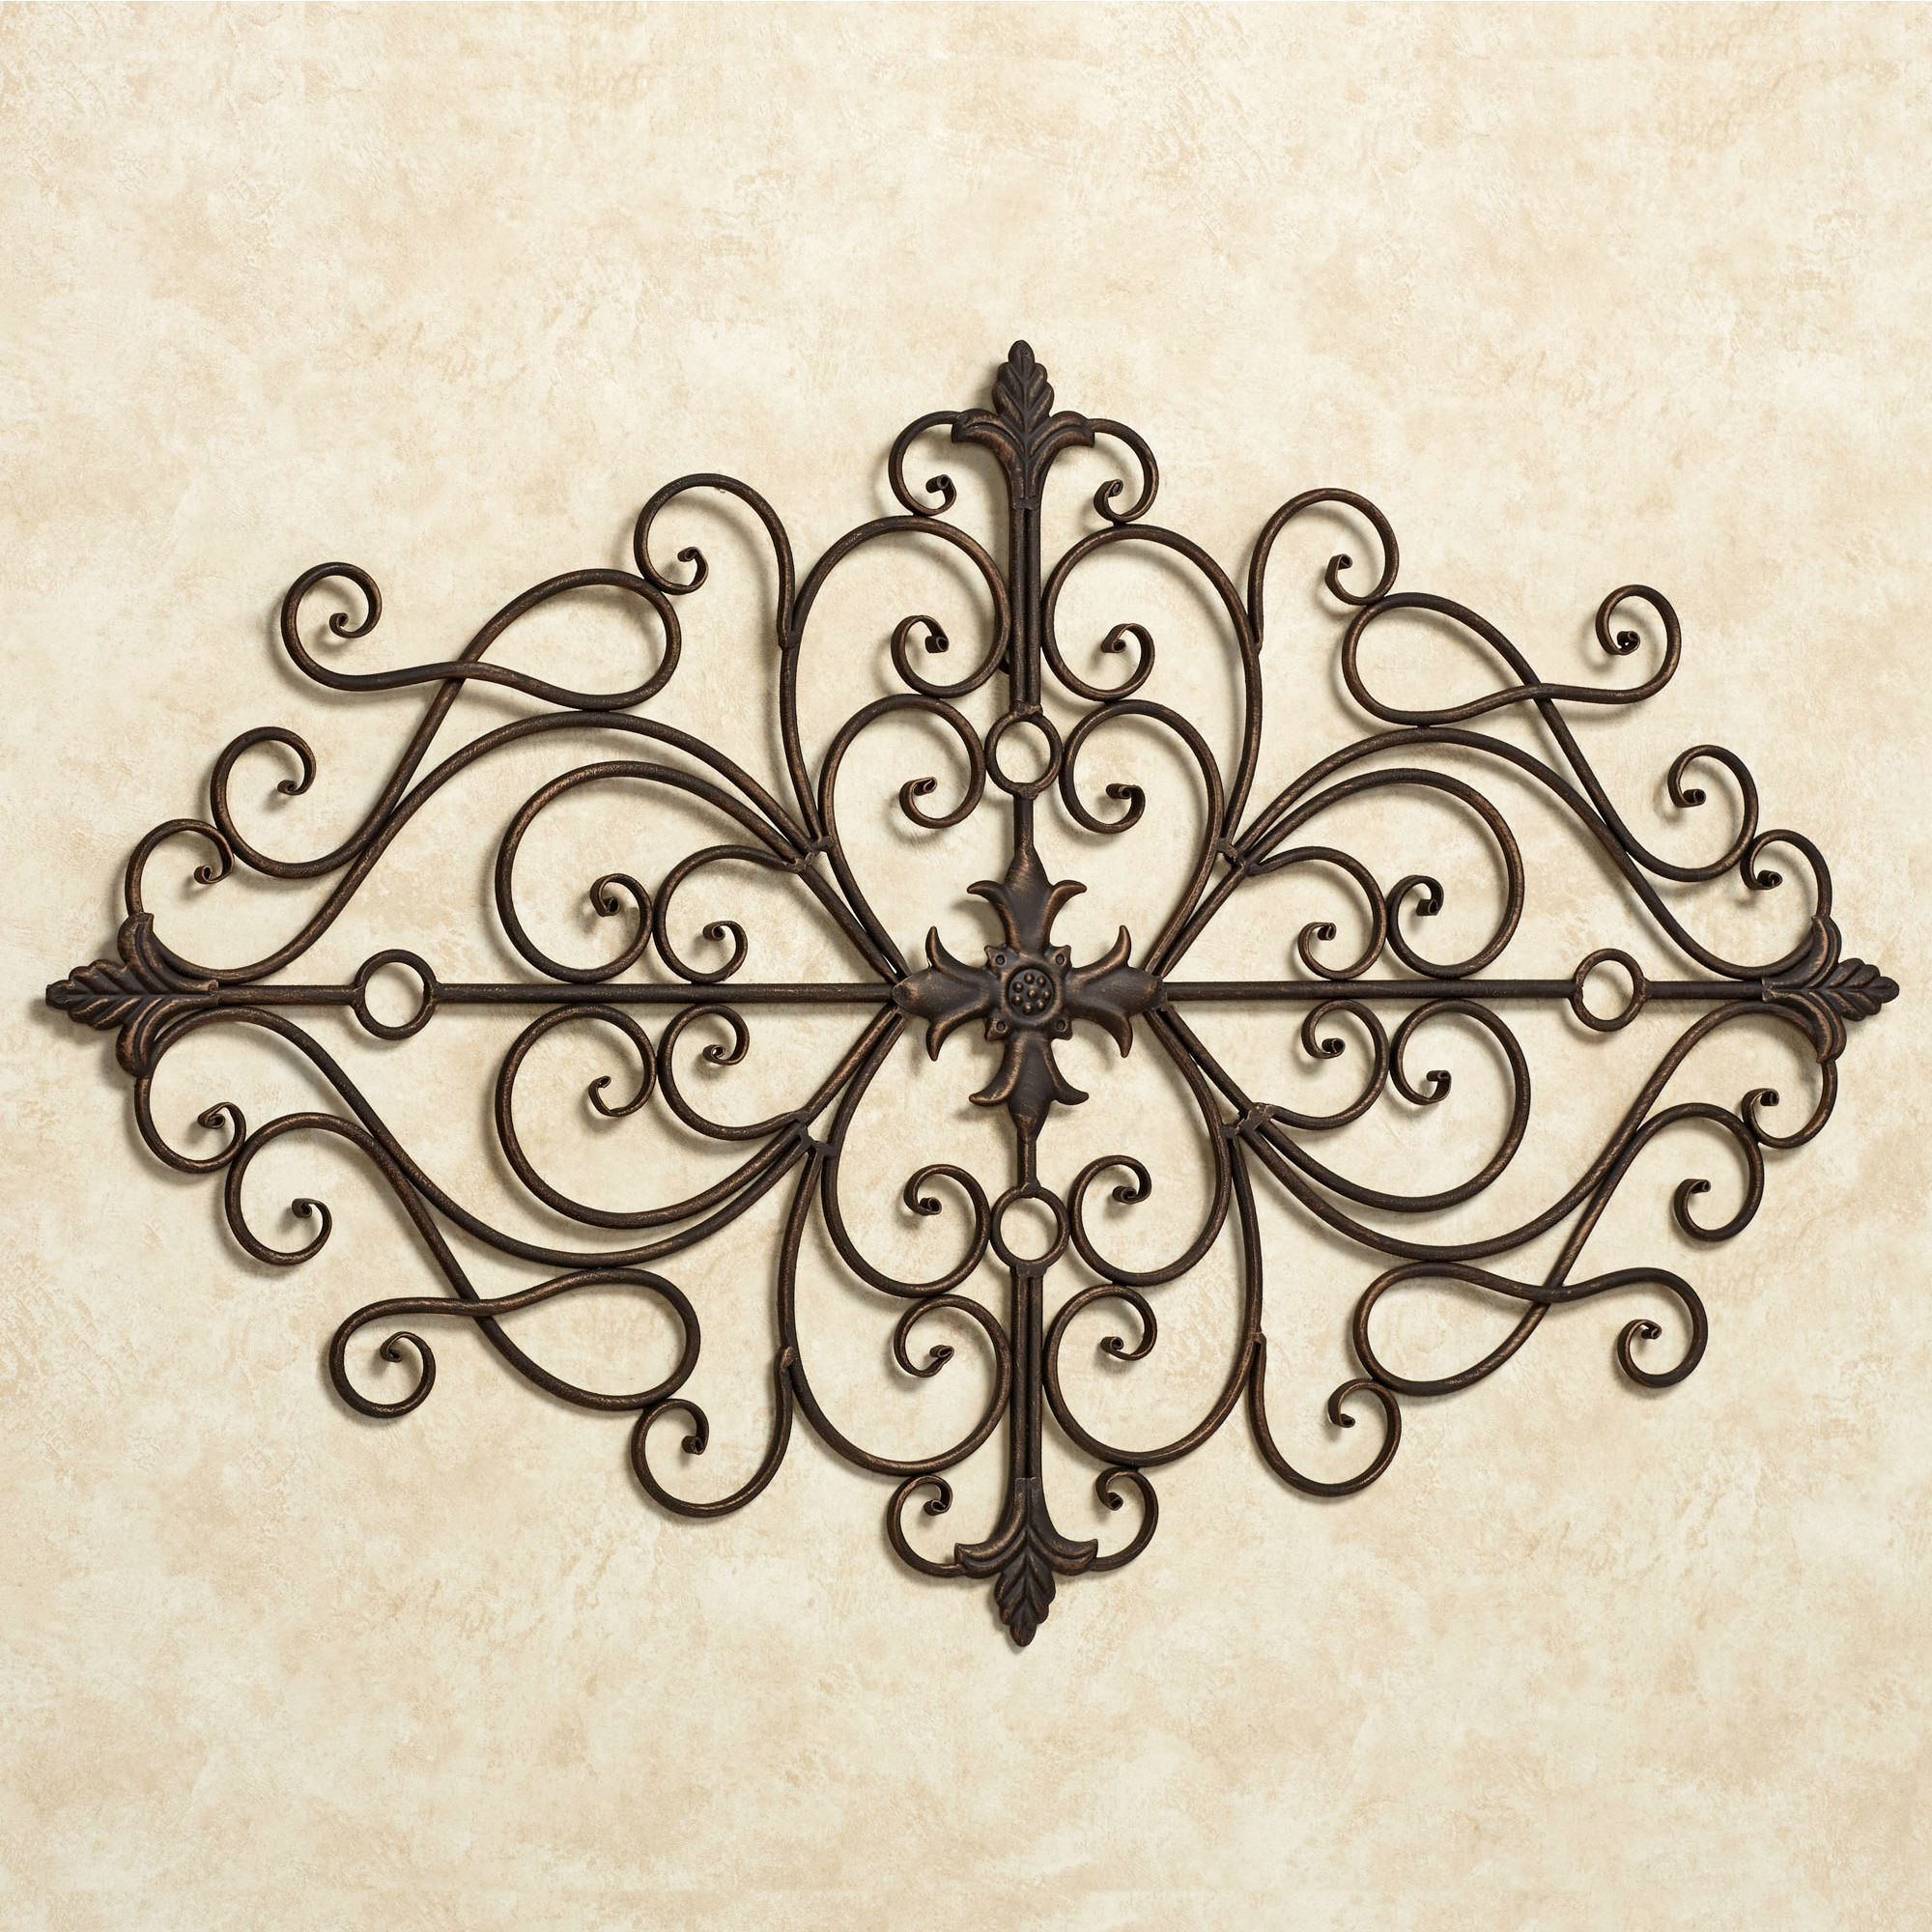 Antique Iron Alloy Wall Décor Throughout Most Recent Ansovino Scrolling Antique Bronze Wall Grille (View 17 of 20)